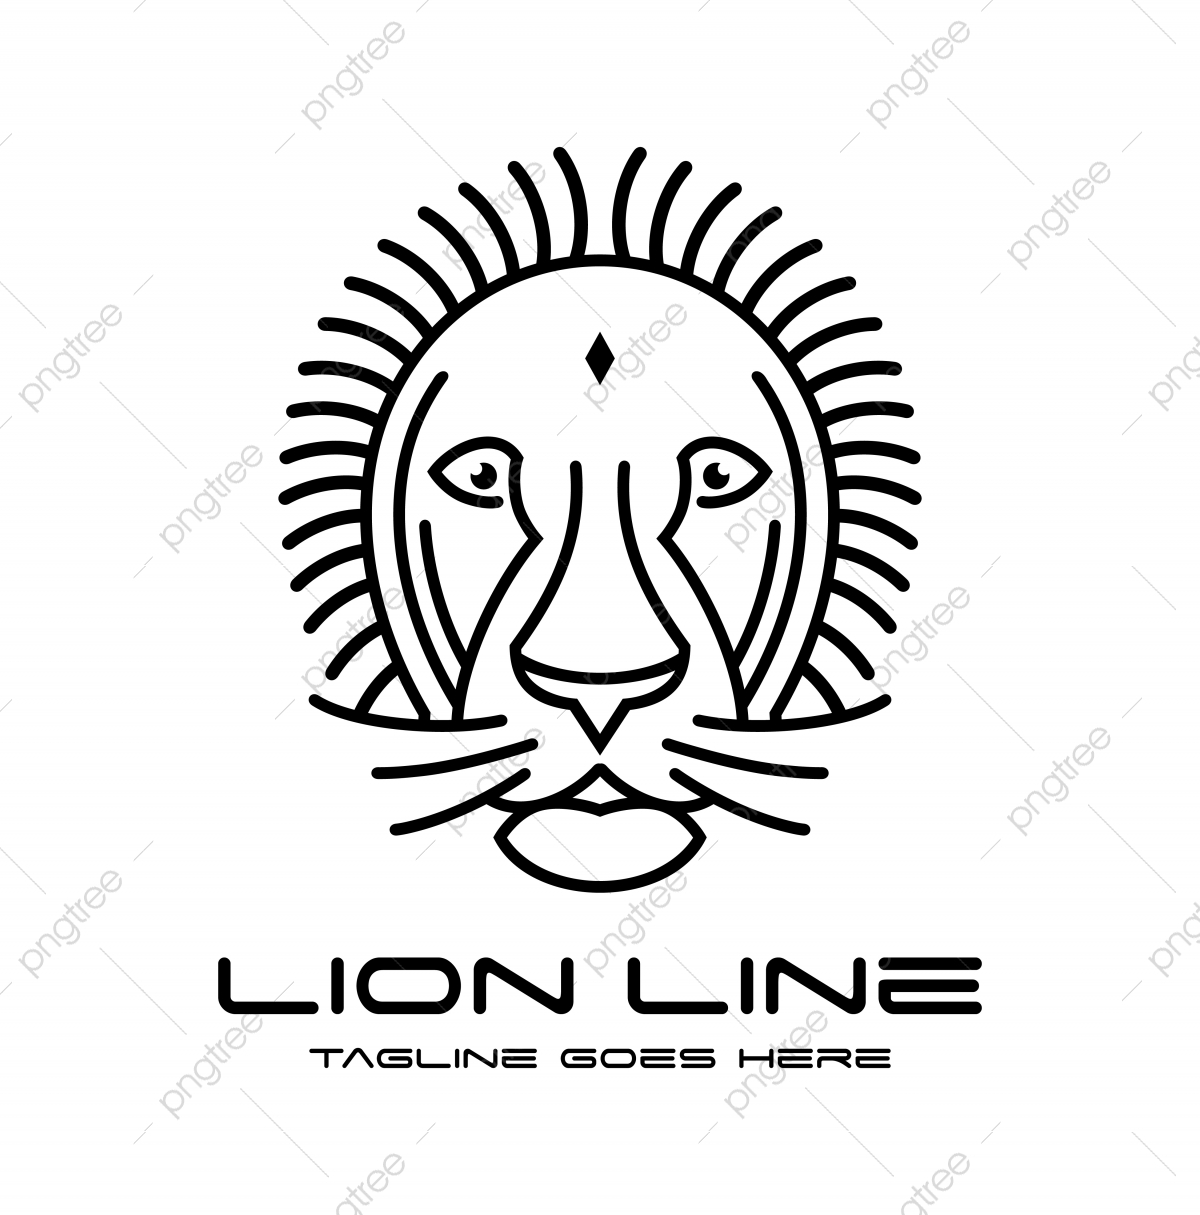 Lion Outline Template – Giraffe outline template lion pattern, giraffe pattern, mammal, resume png.